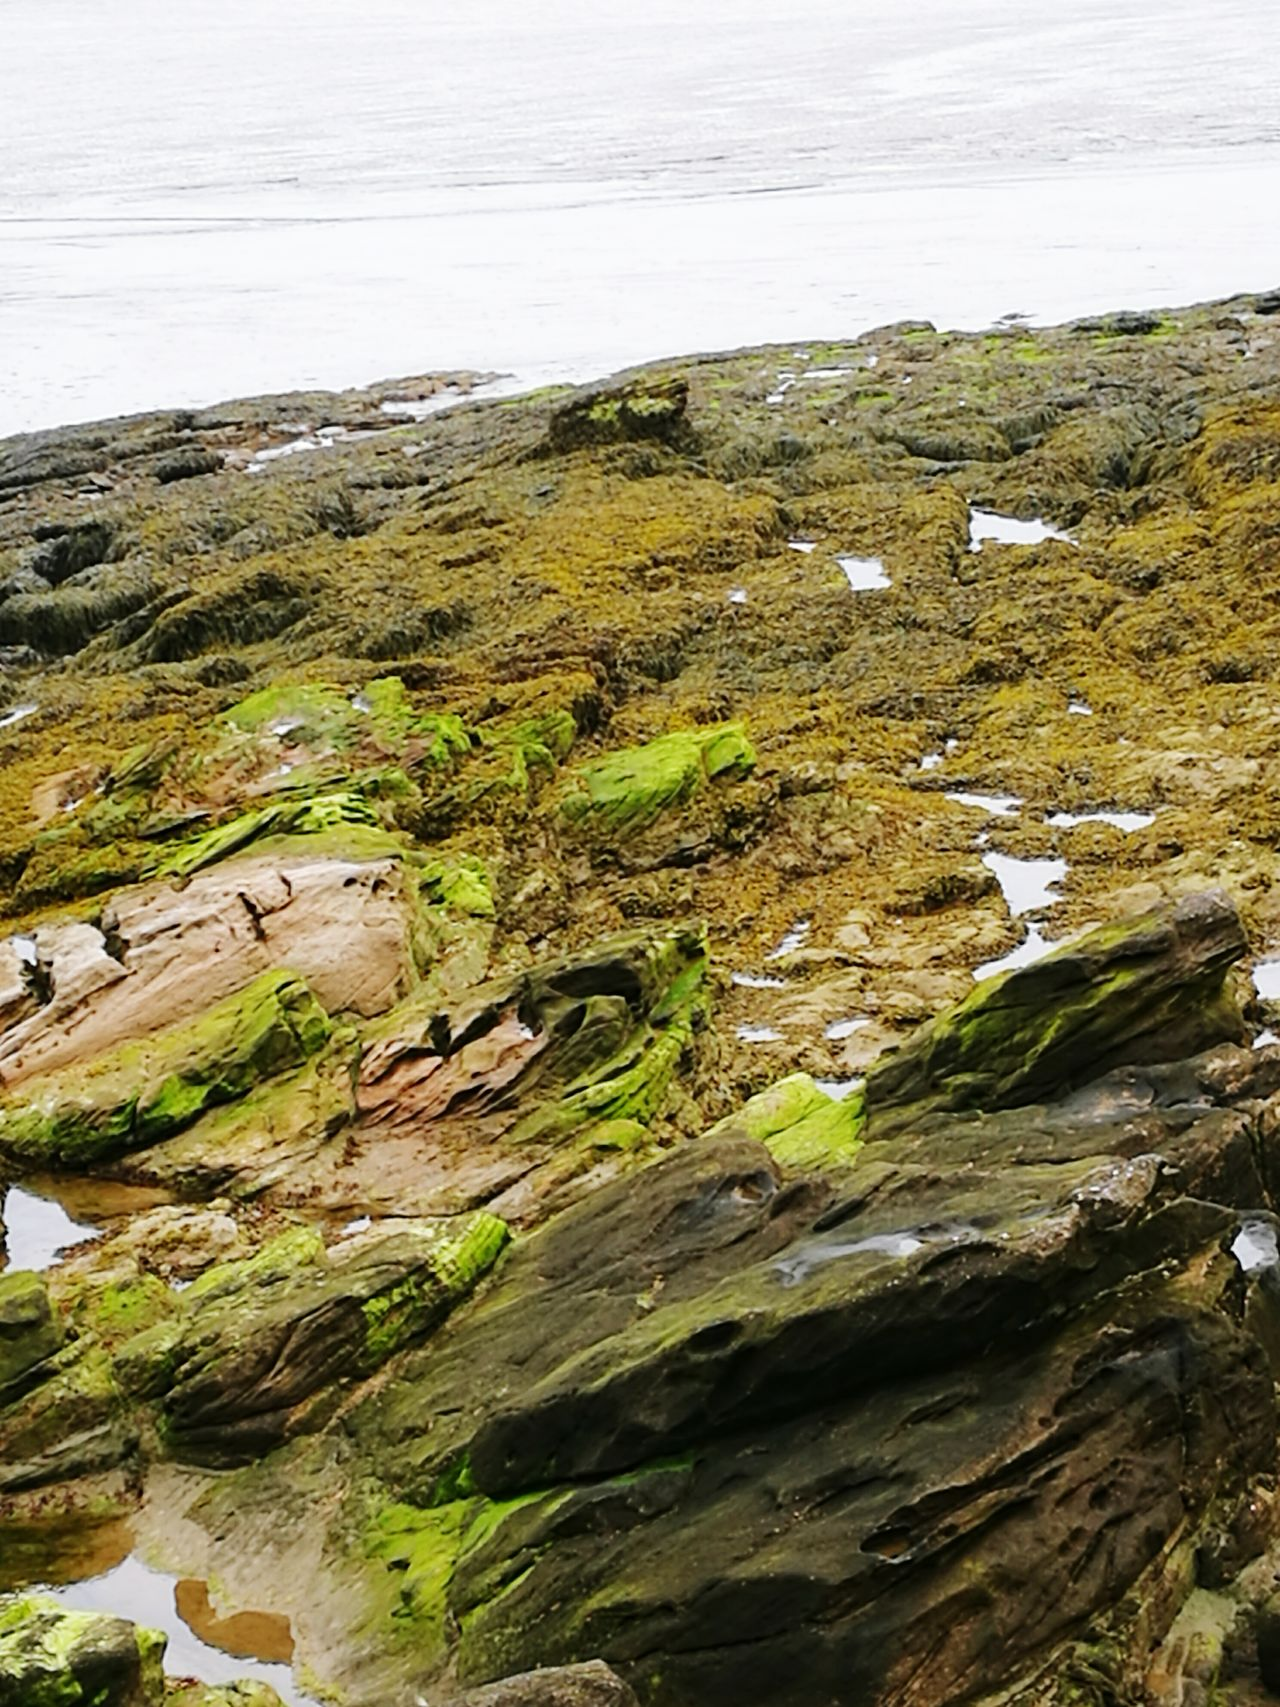 Beach Sea Nature Outdoors Water Tranquility Rock - Object Landscape No People Tranquil Scene Tide Beauty In Nature Day Scenics Low Tide Horizon Over Water Sky Moss